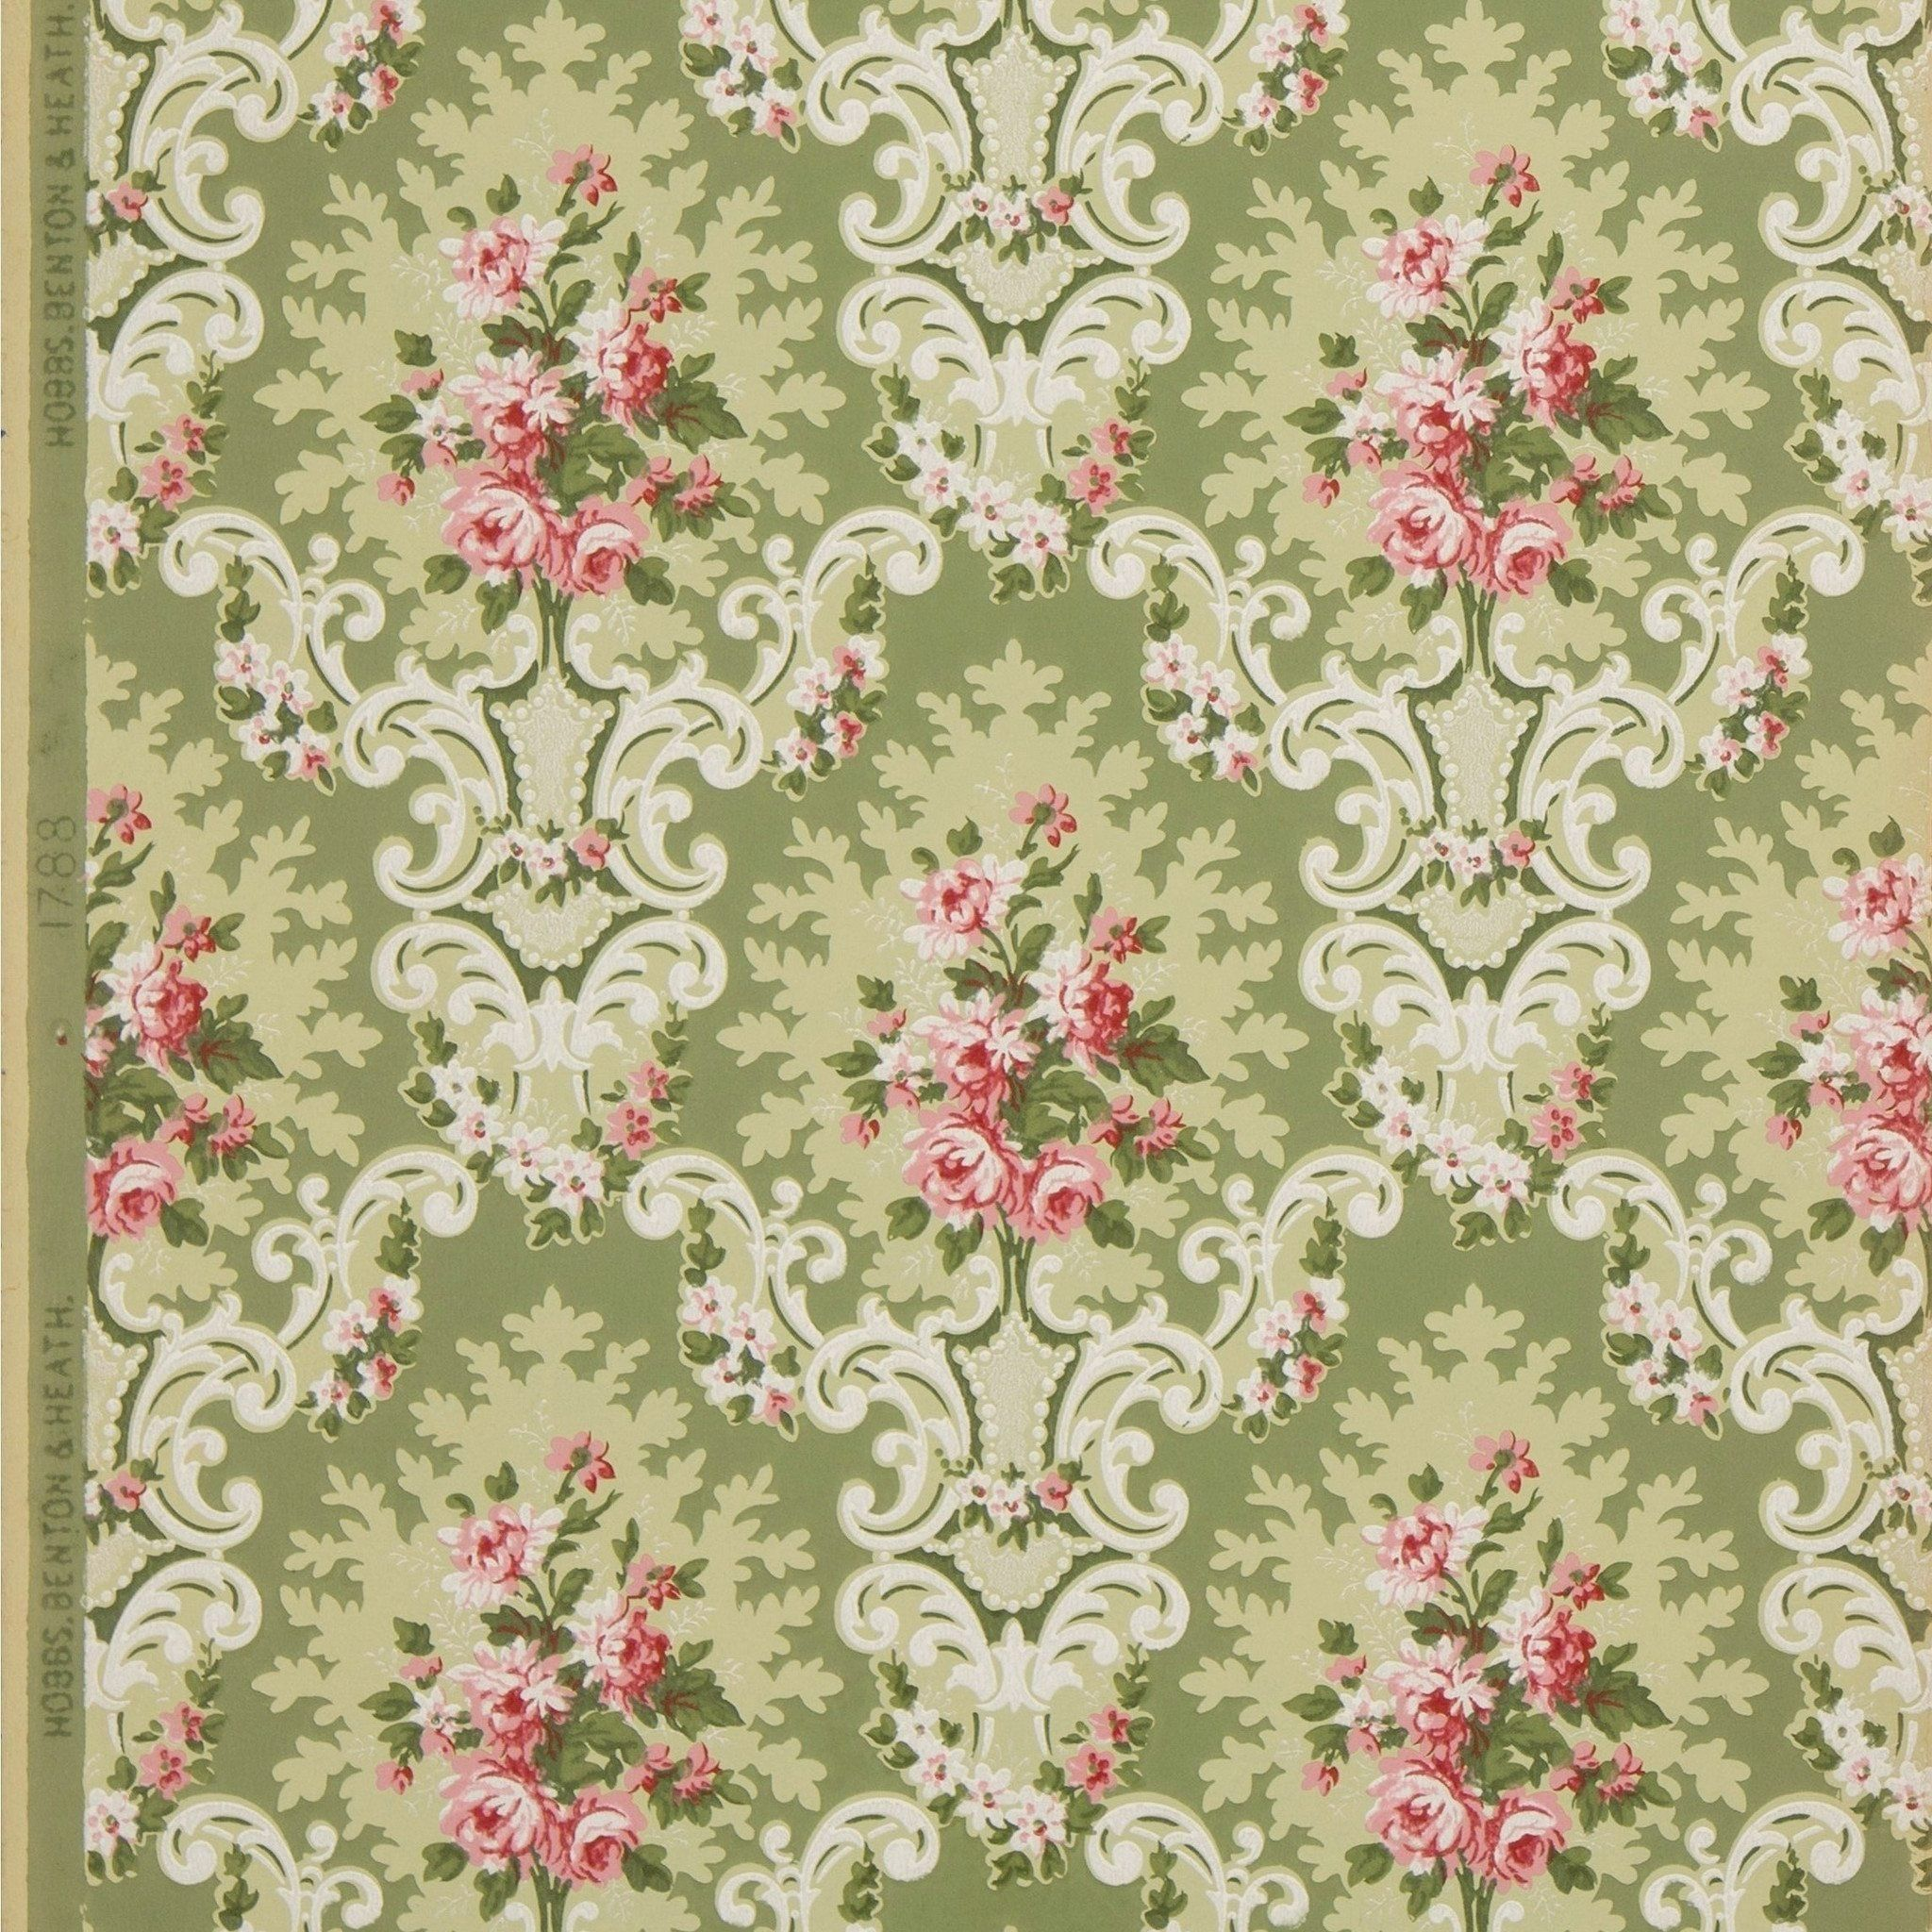 772bc449 Victorian and Edwardian Rose Clusters in Rococo Cartouches - Antique  Wallpaper Remnant 1890s/1900s (American)